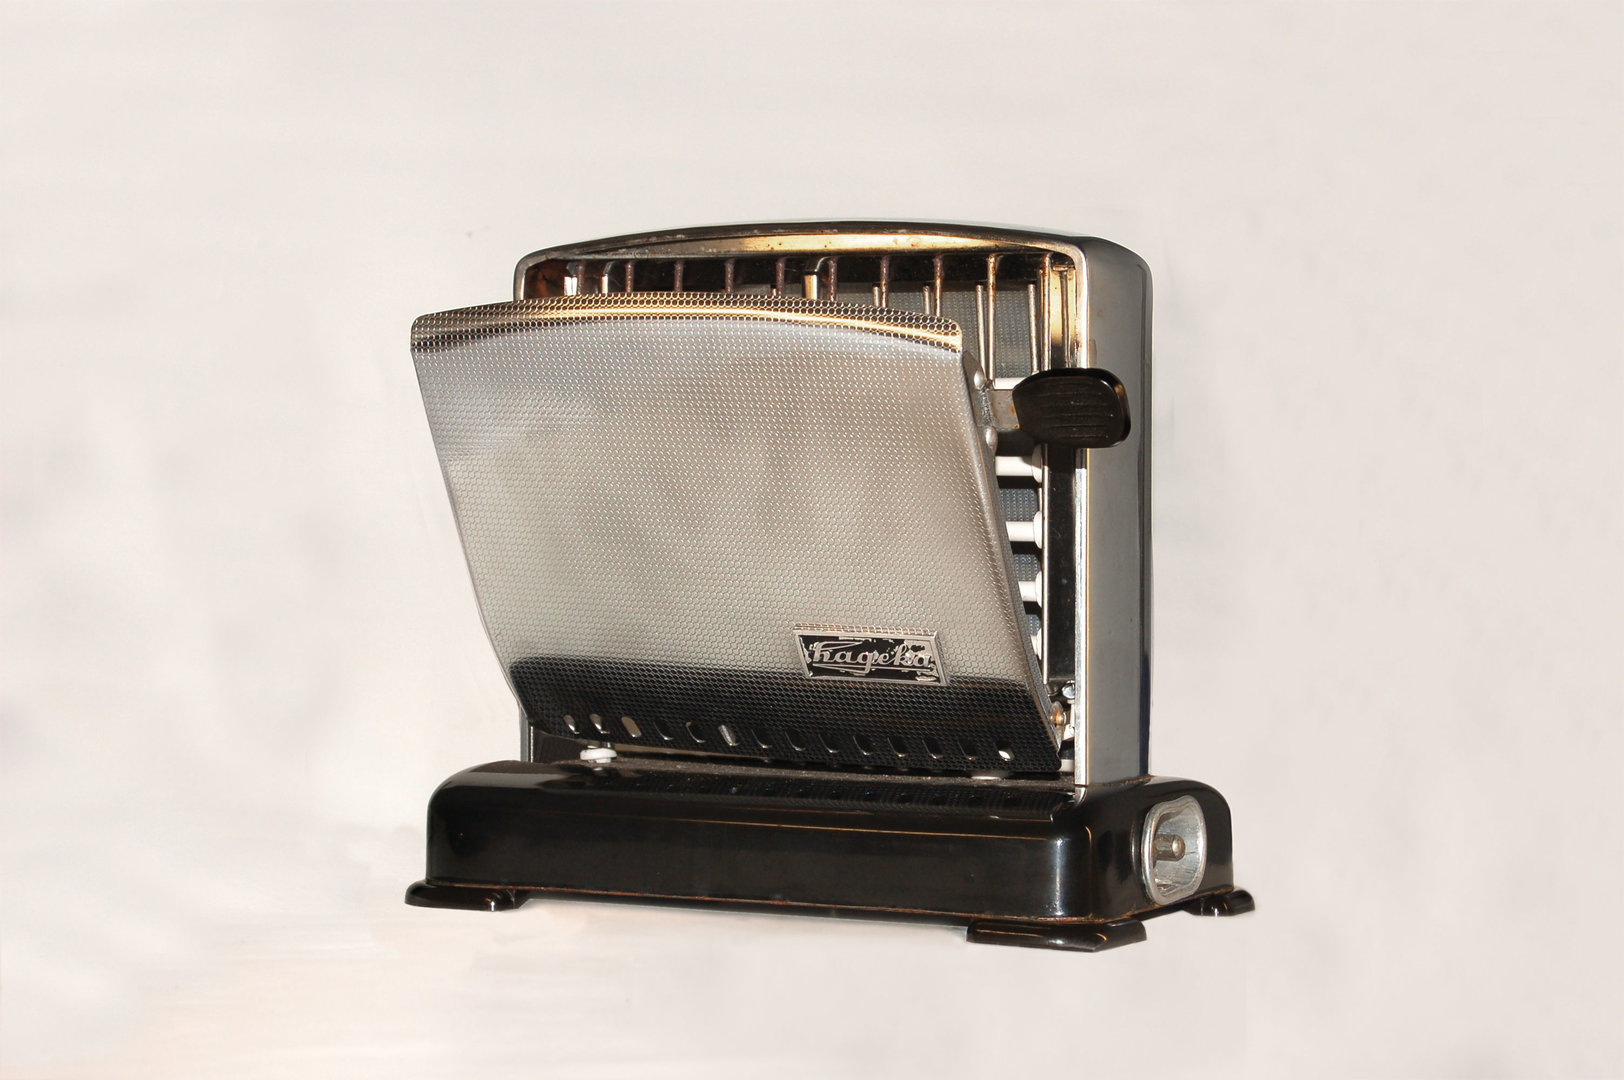 Ddr Toaster